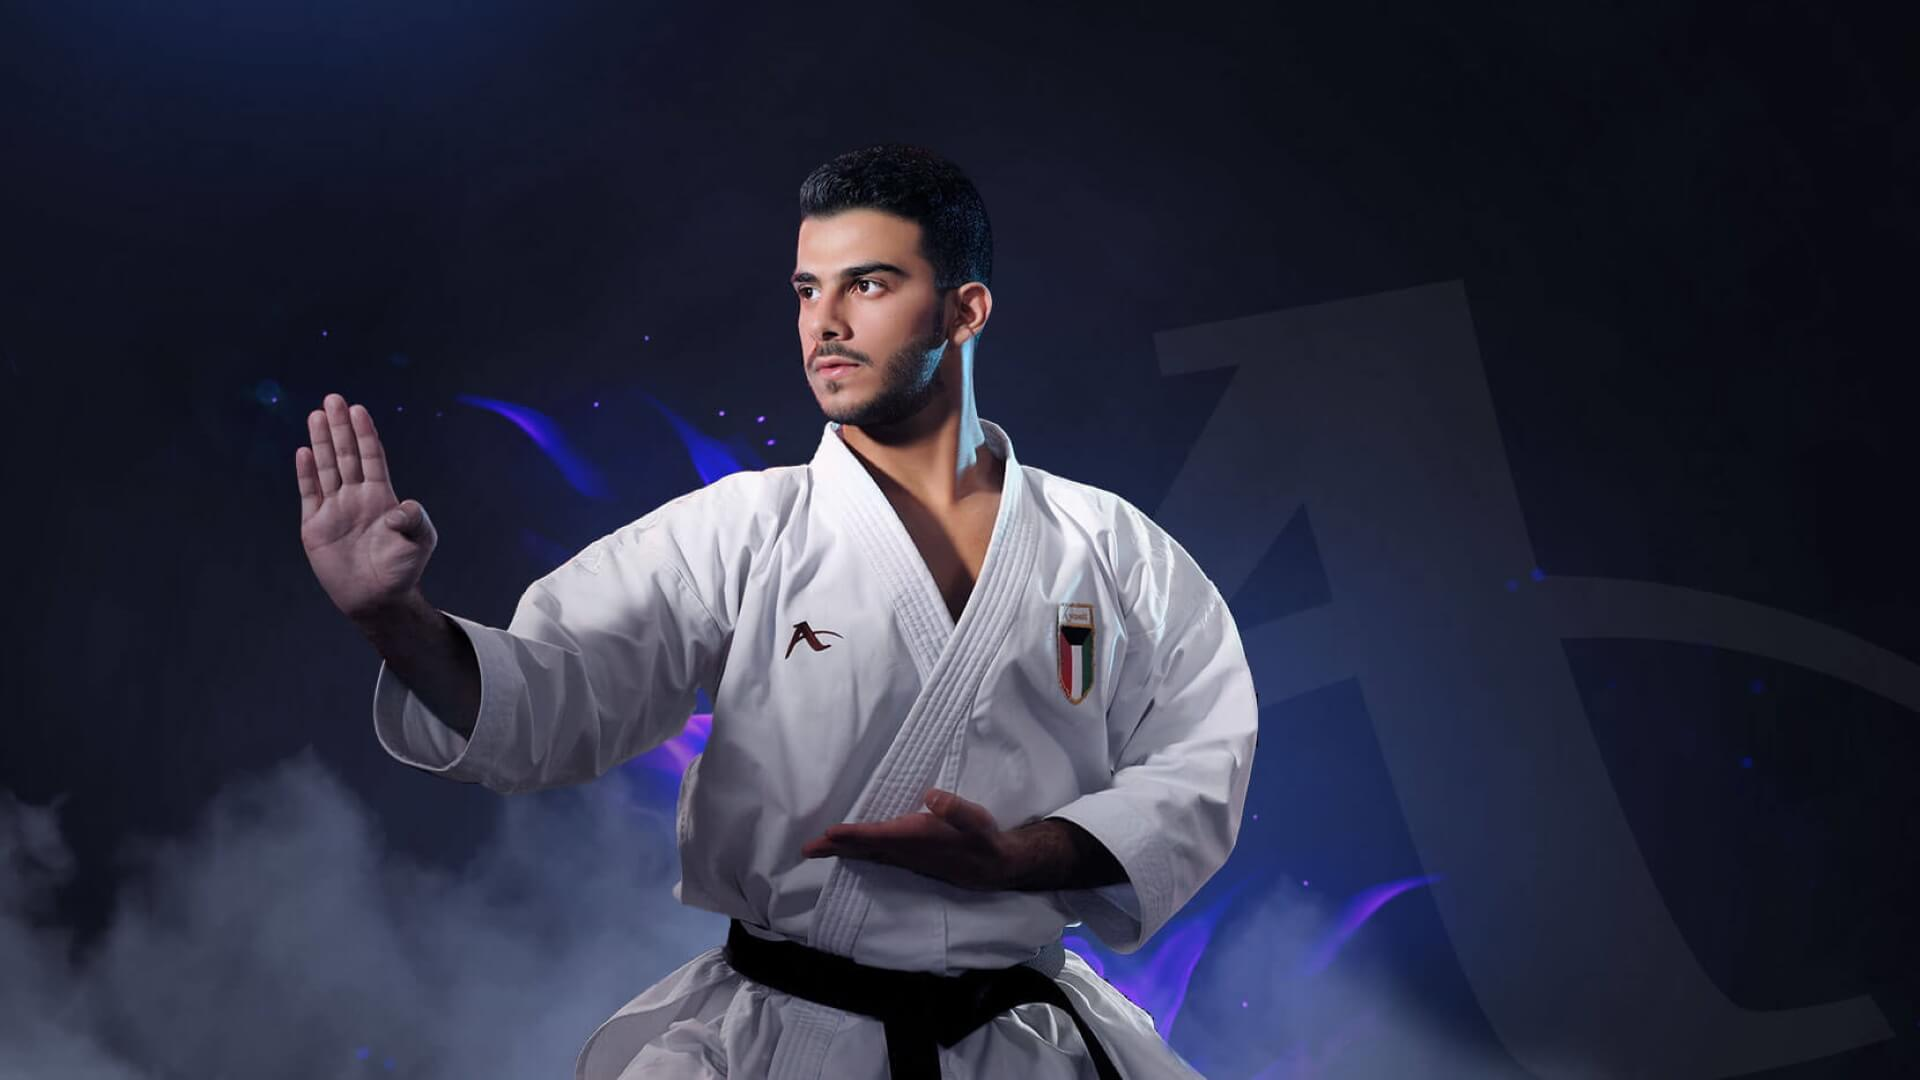 IMPORTANCE OF THE QUALITY OF THE KARATE UNIFORM